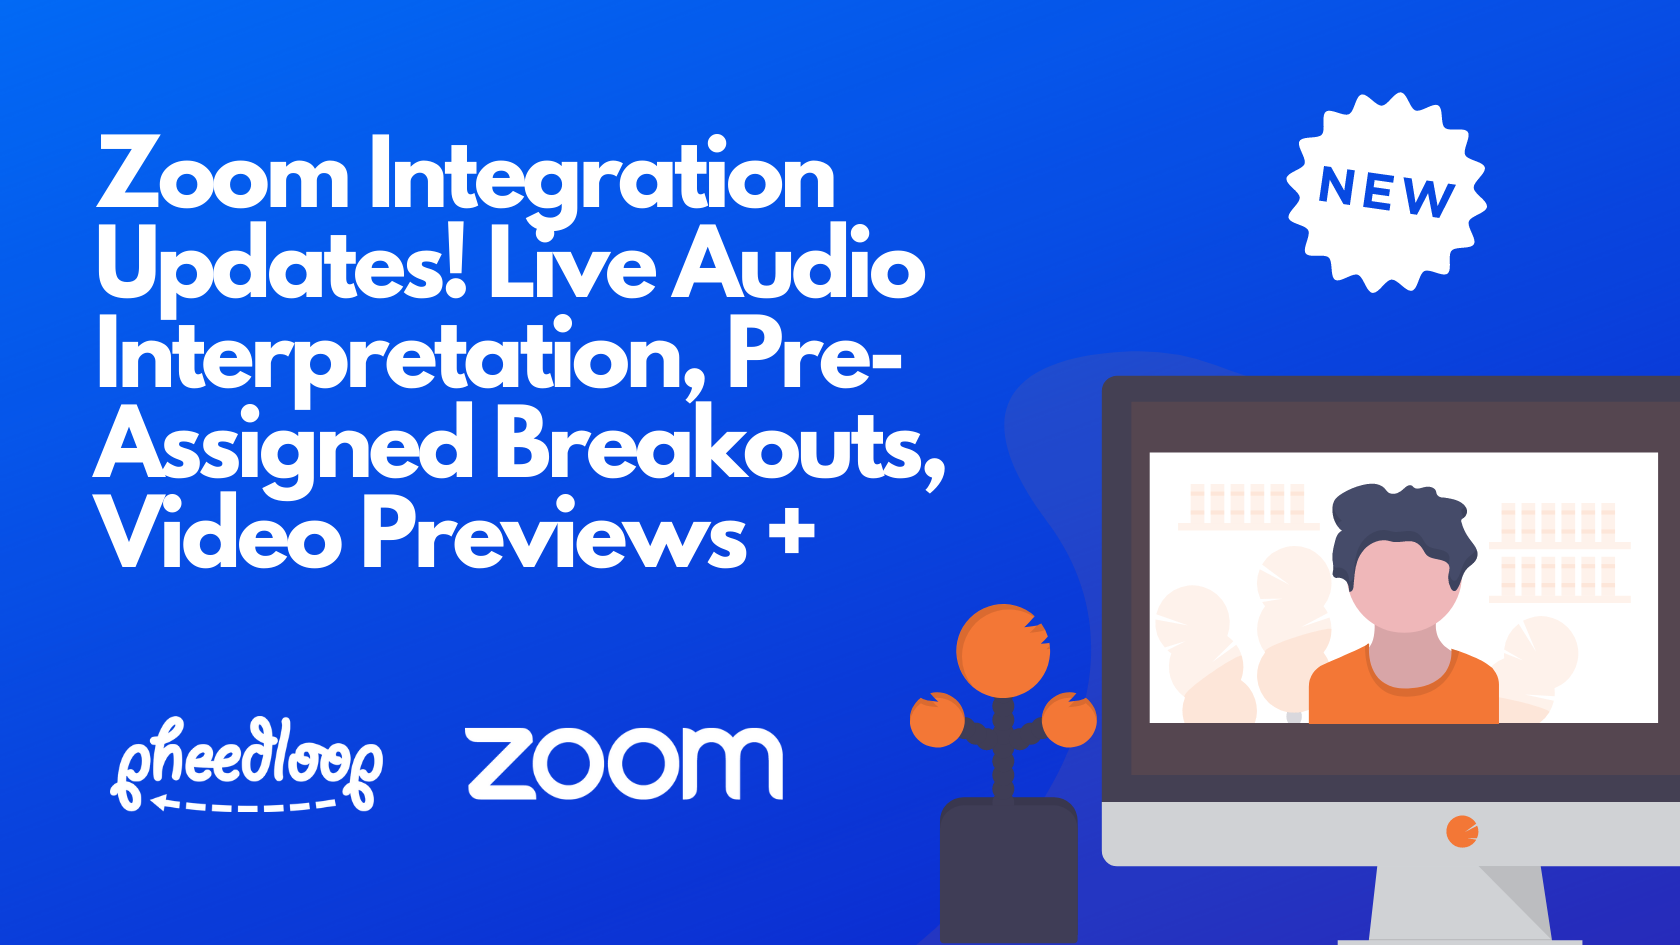 Zoom Integration Updates! Live Interpretation, Pre-Assigned Breakouts, Audio/Video Previews, and More!